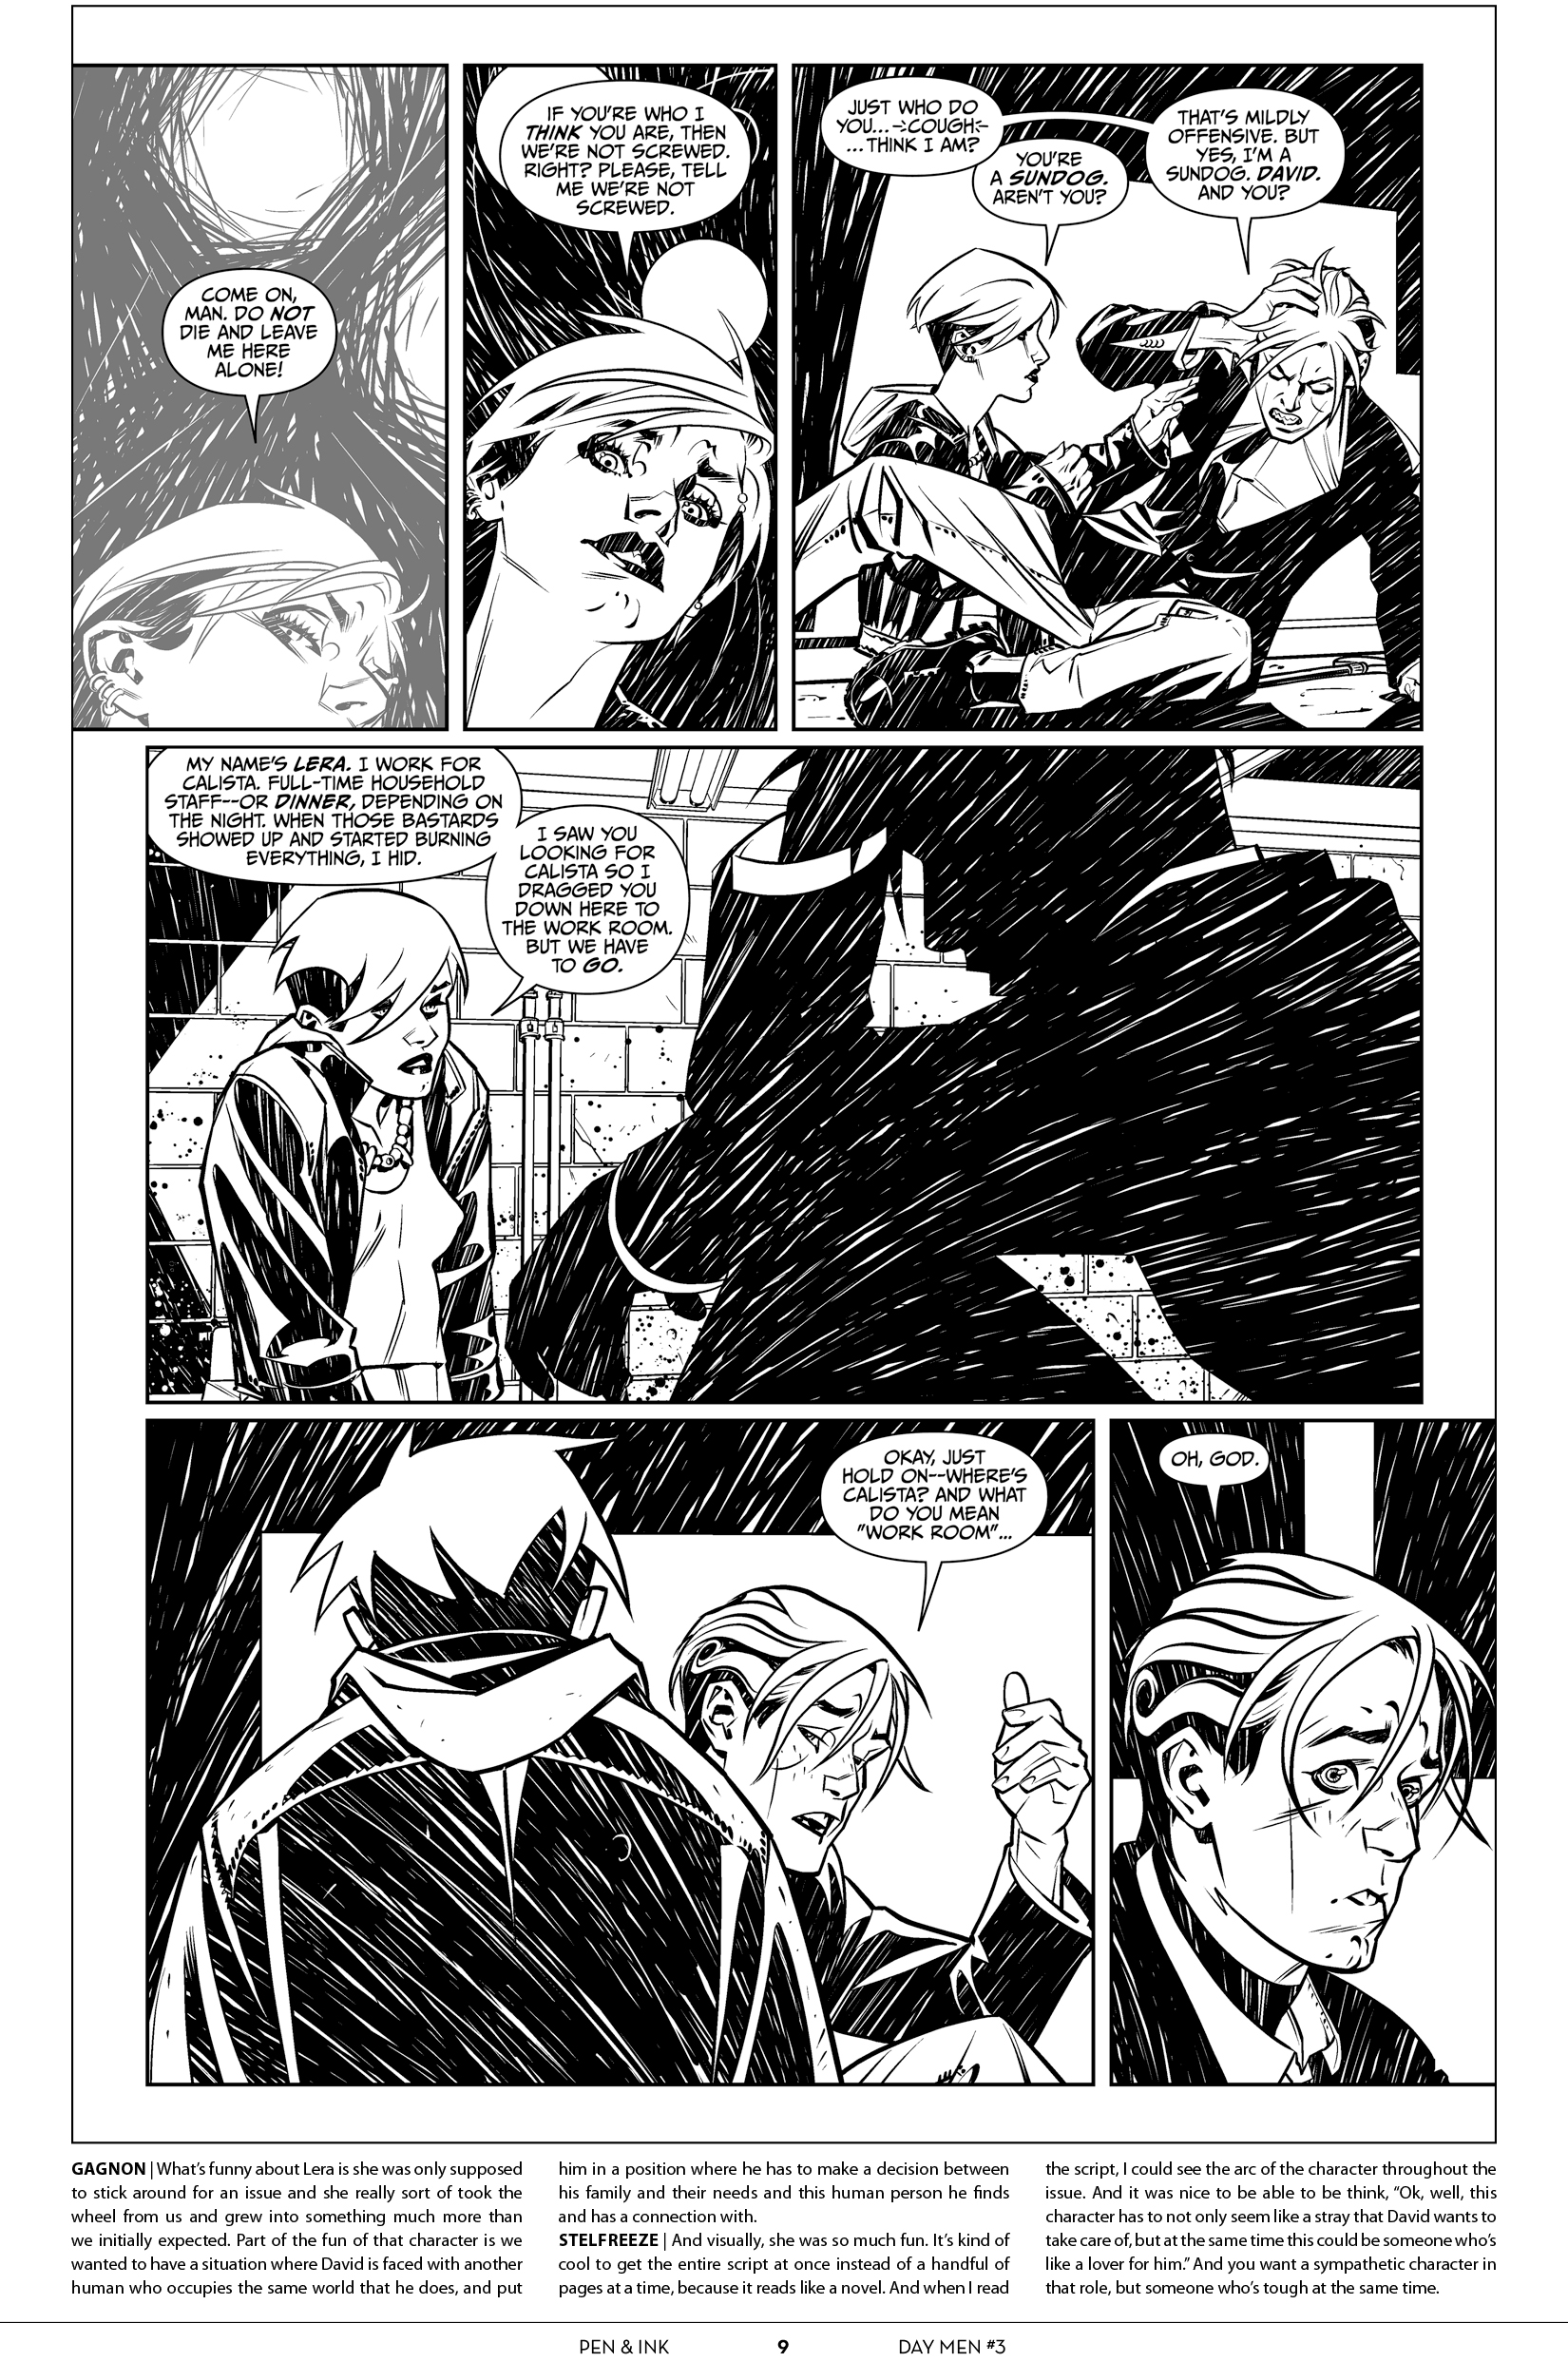 BOOM_Pen_and_Ink_Day_Men_002_PRESS-9.jpg